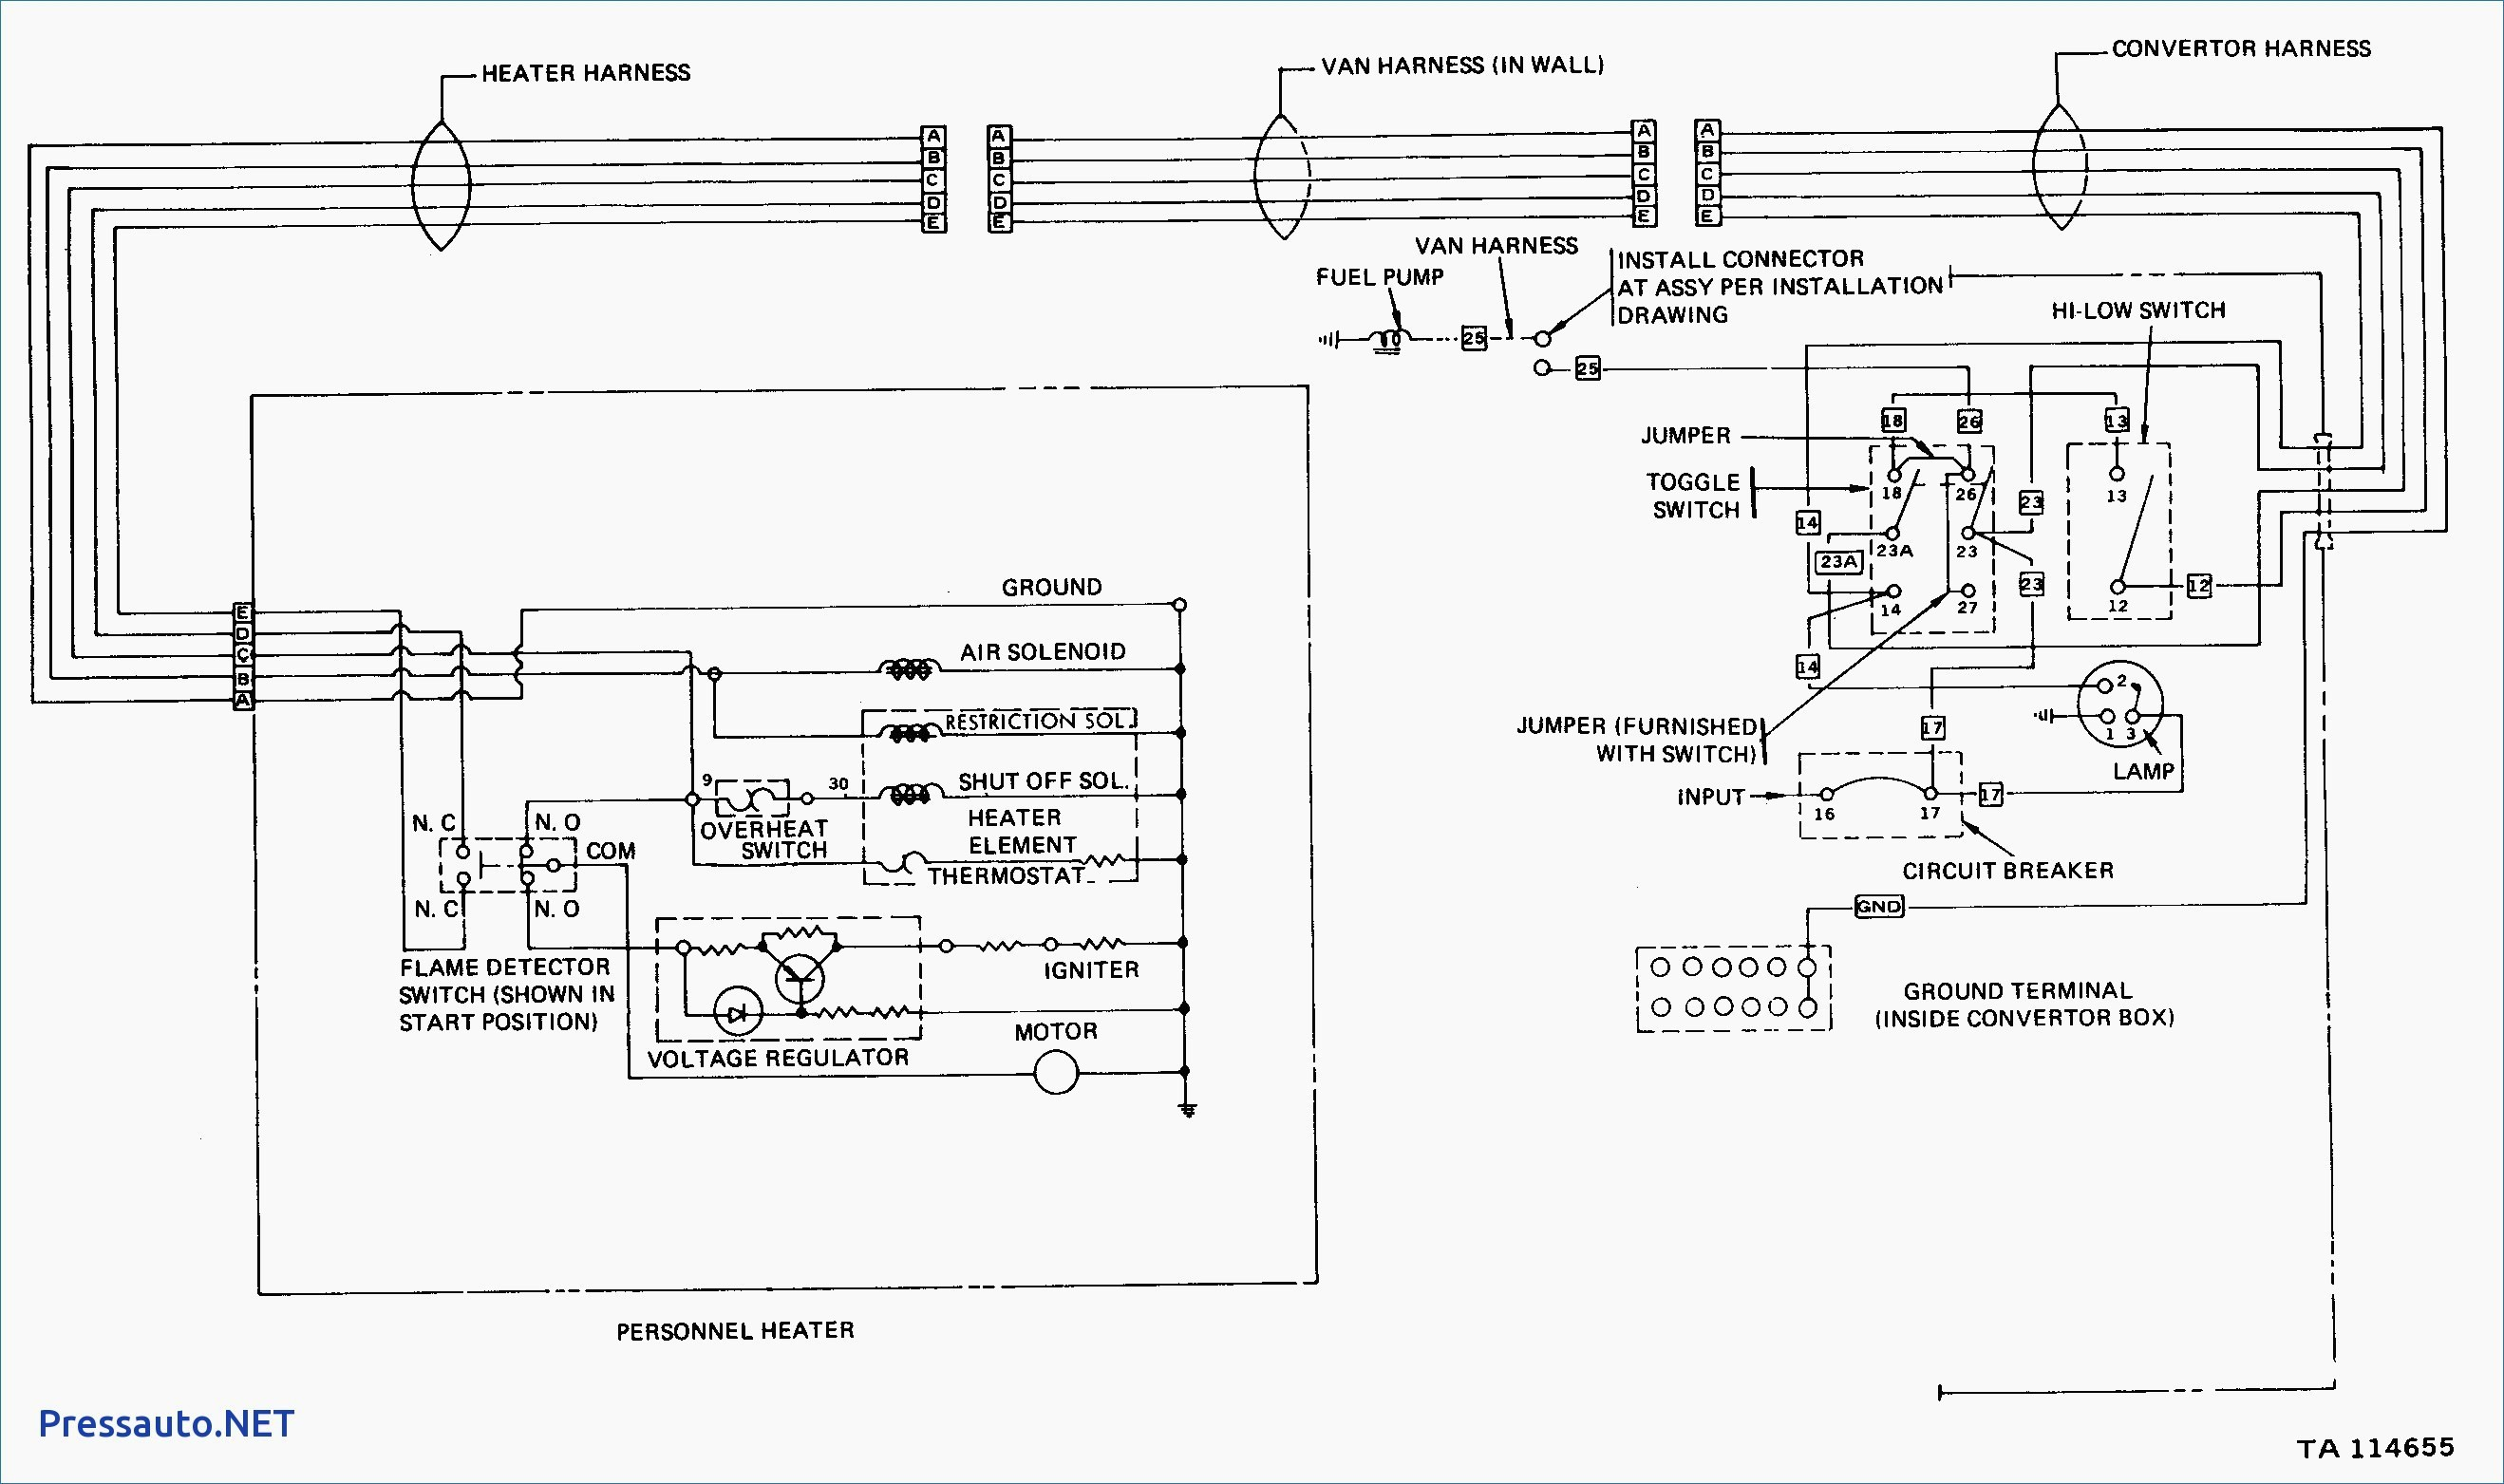 Daewoo Remote Starter Diagram Real Wiring Korando Power Distribution And Circuit Auto Command Page 2 Rh Rivcas Org Avital Start 99 Silverado